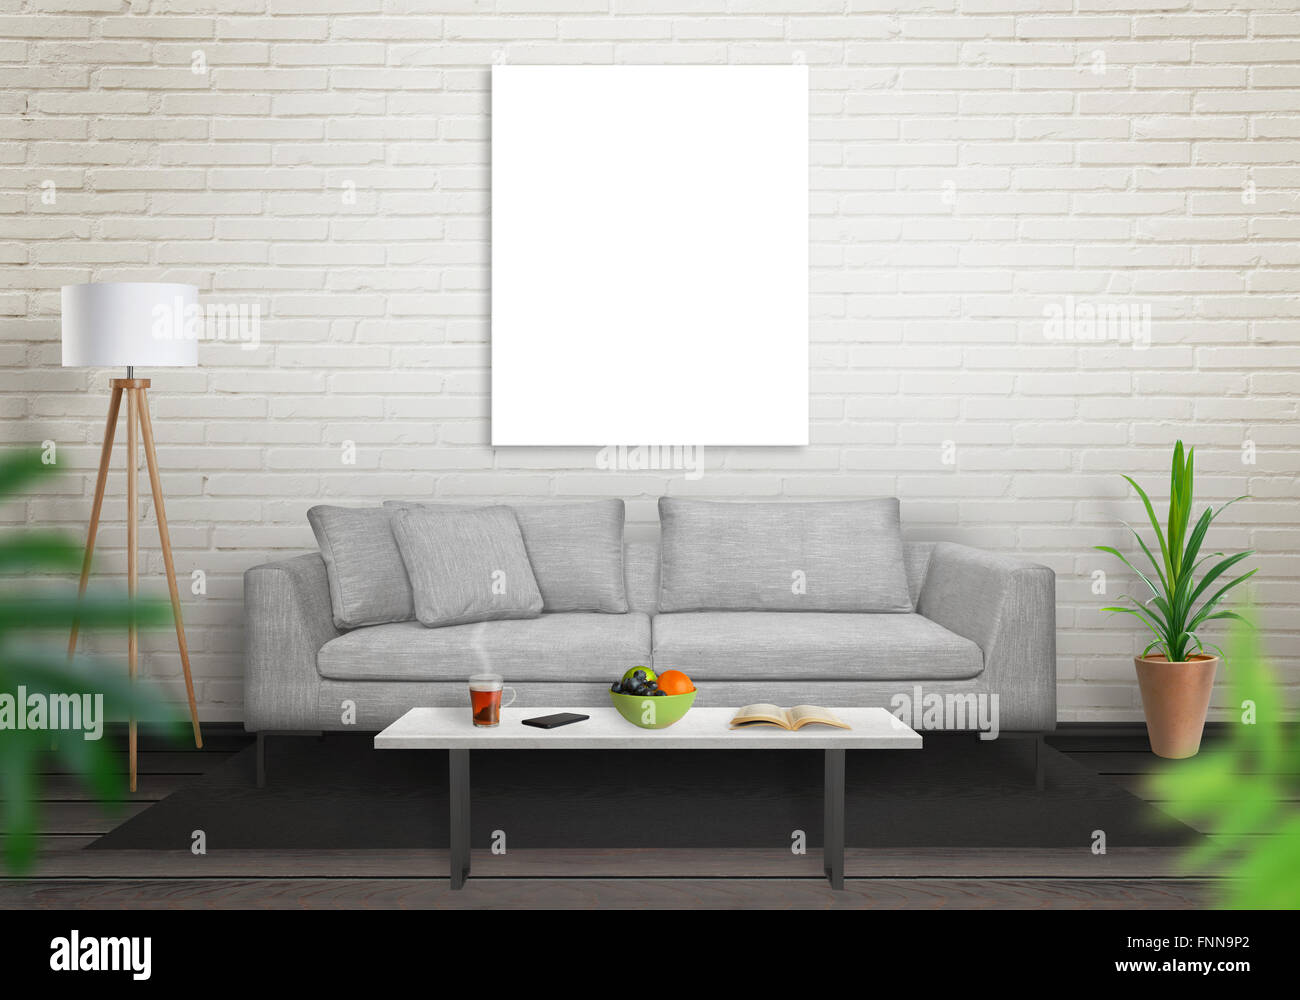 living room art wall candice olson decorating ideas isolated canvas in for mockup brick white and black wooden floor sofa table lamp plant